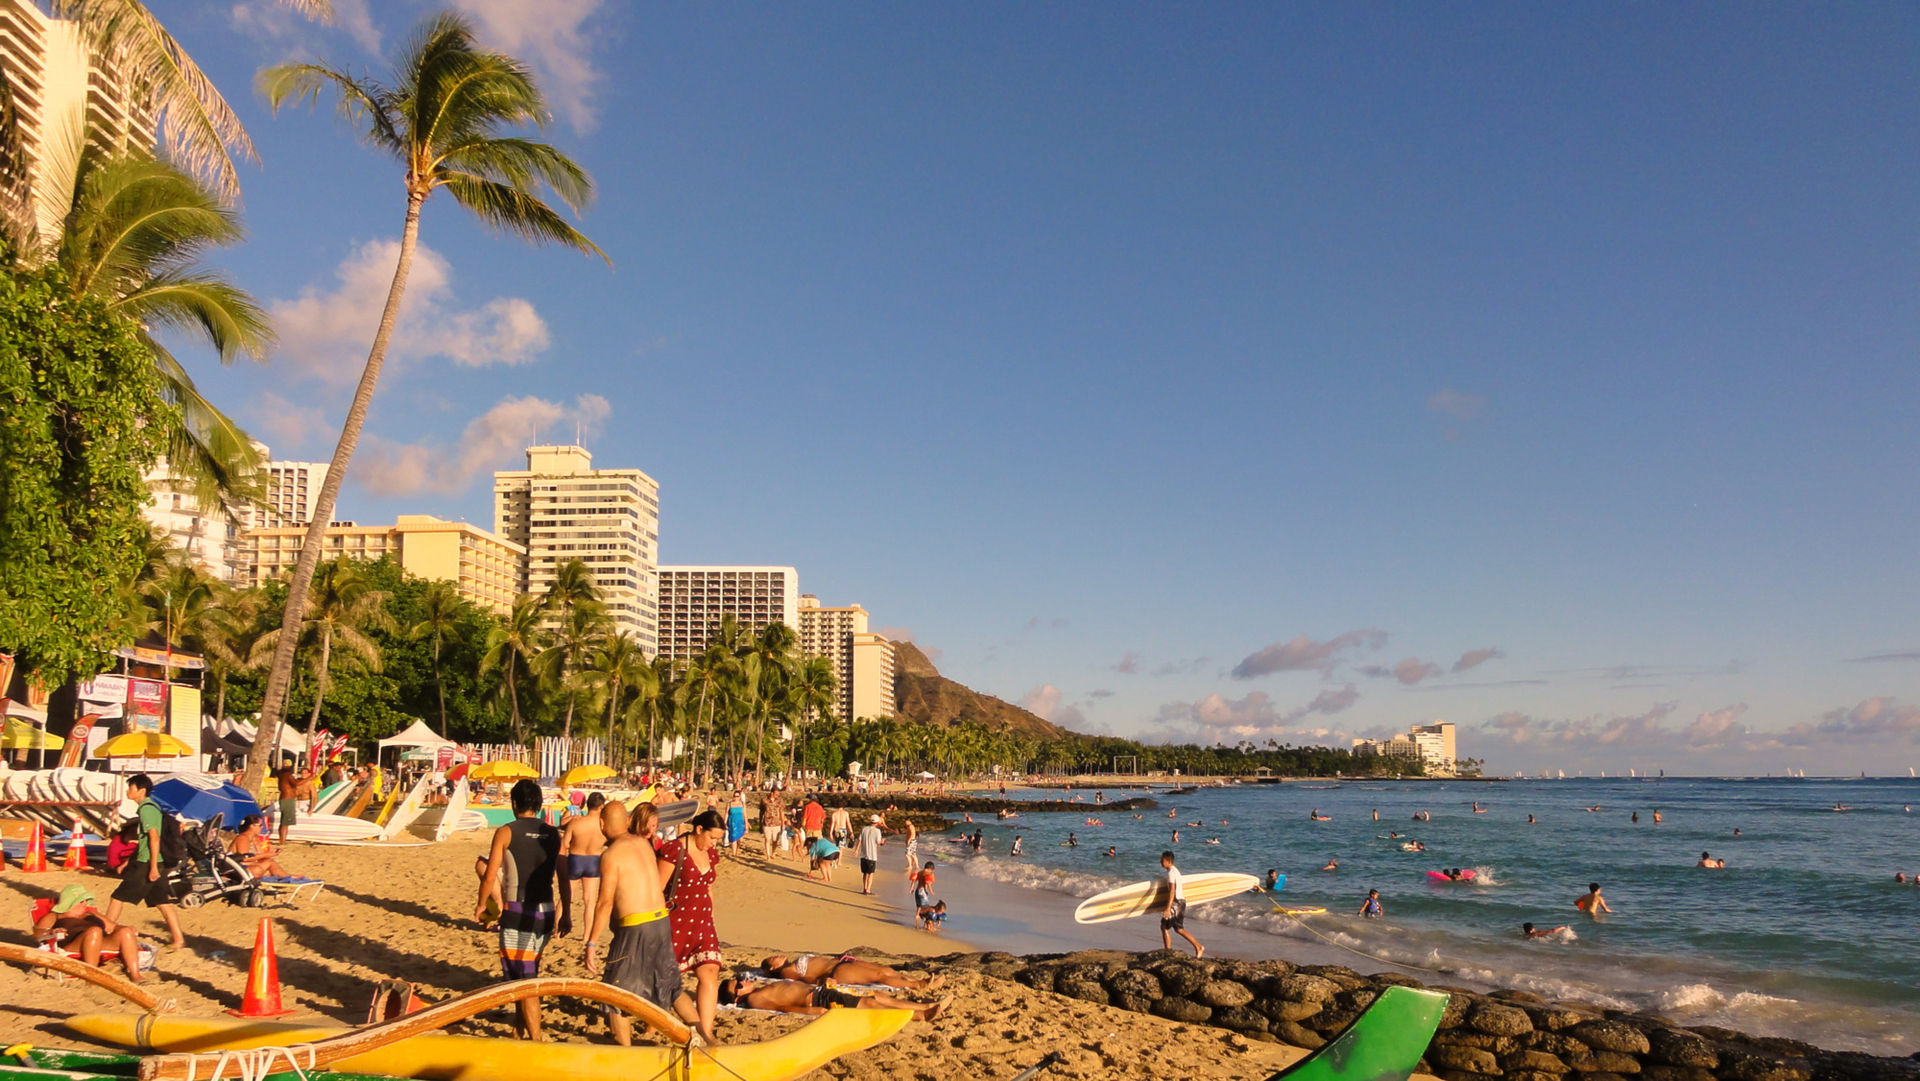 Waikiki Beach, Honolulu - Hawaii